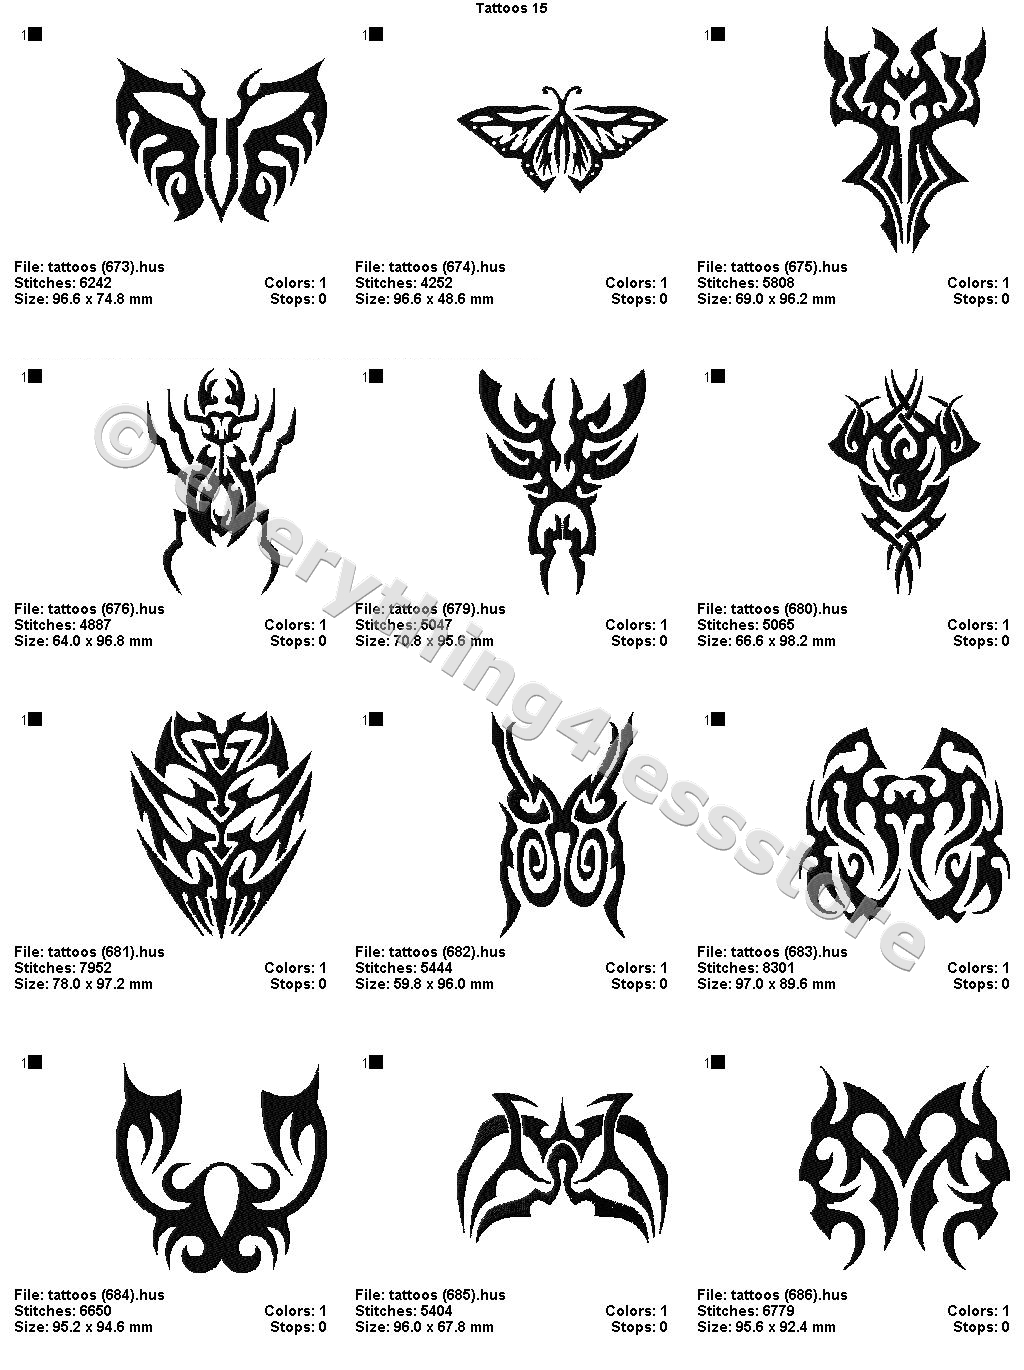 48 Tattoos 4X4 Volume 15 Mega Embroidery Designs On Cd Ebay Ideas And Designs